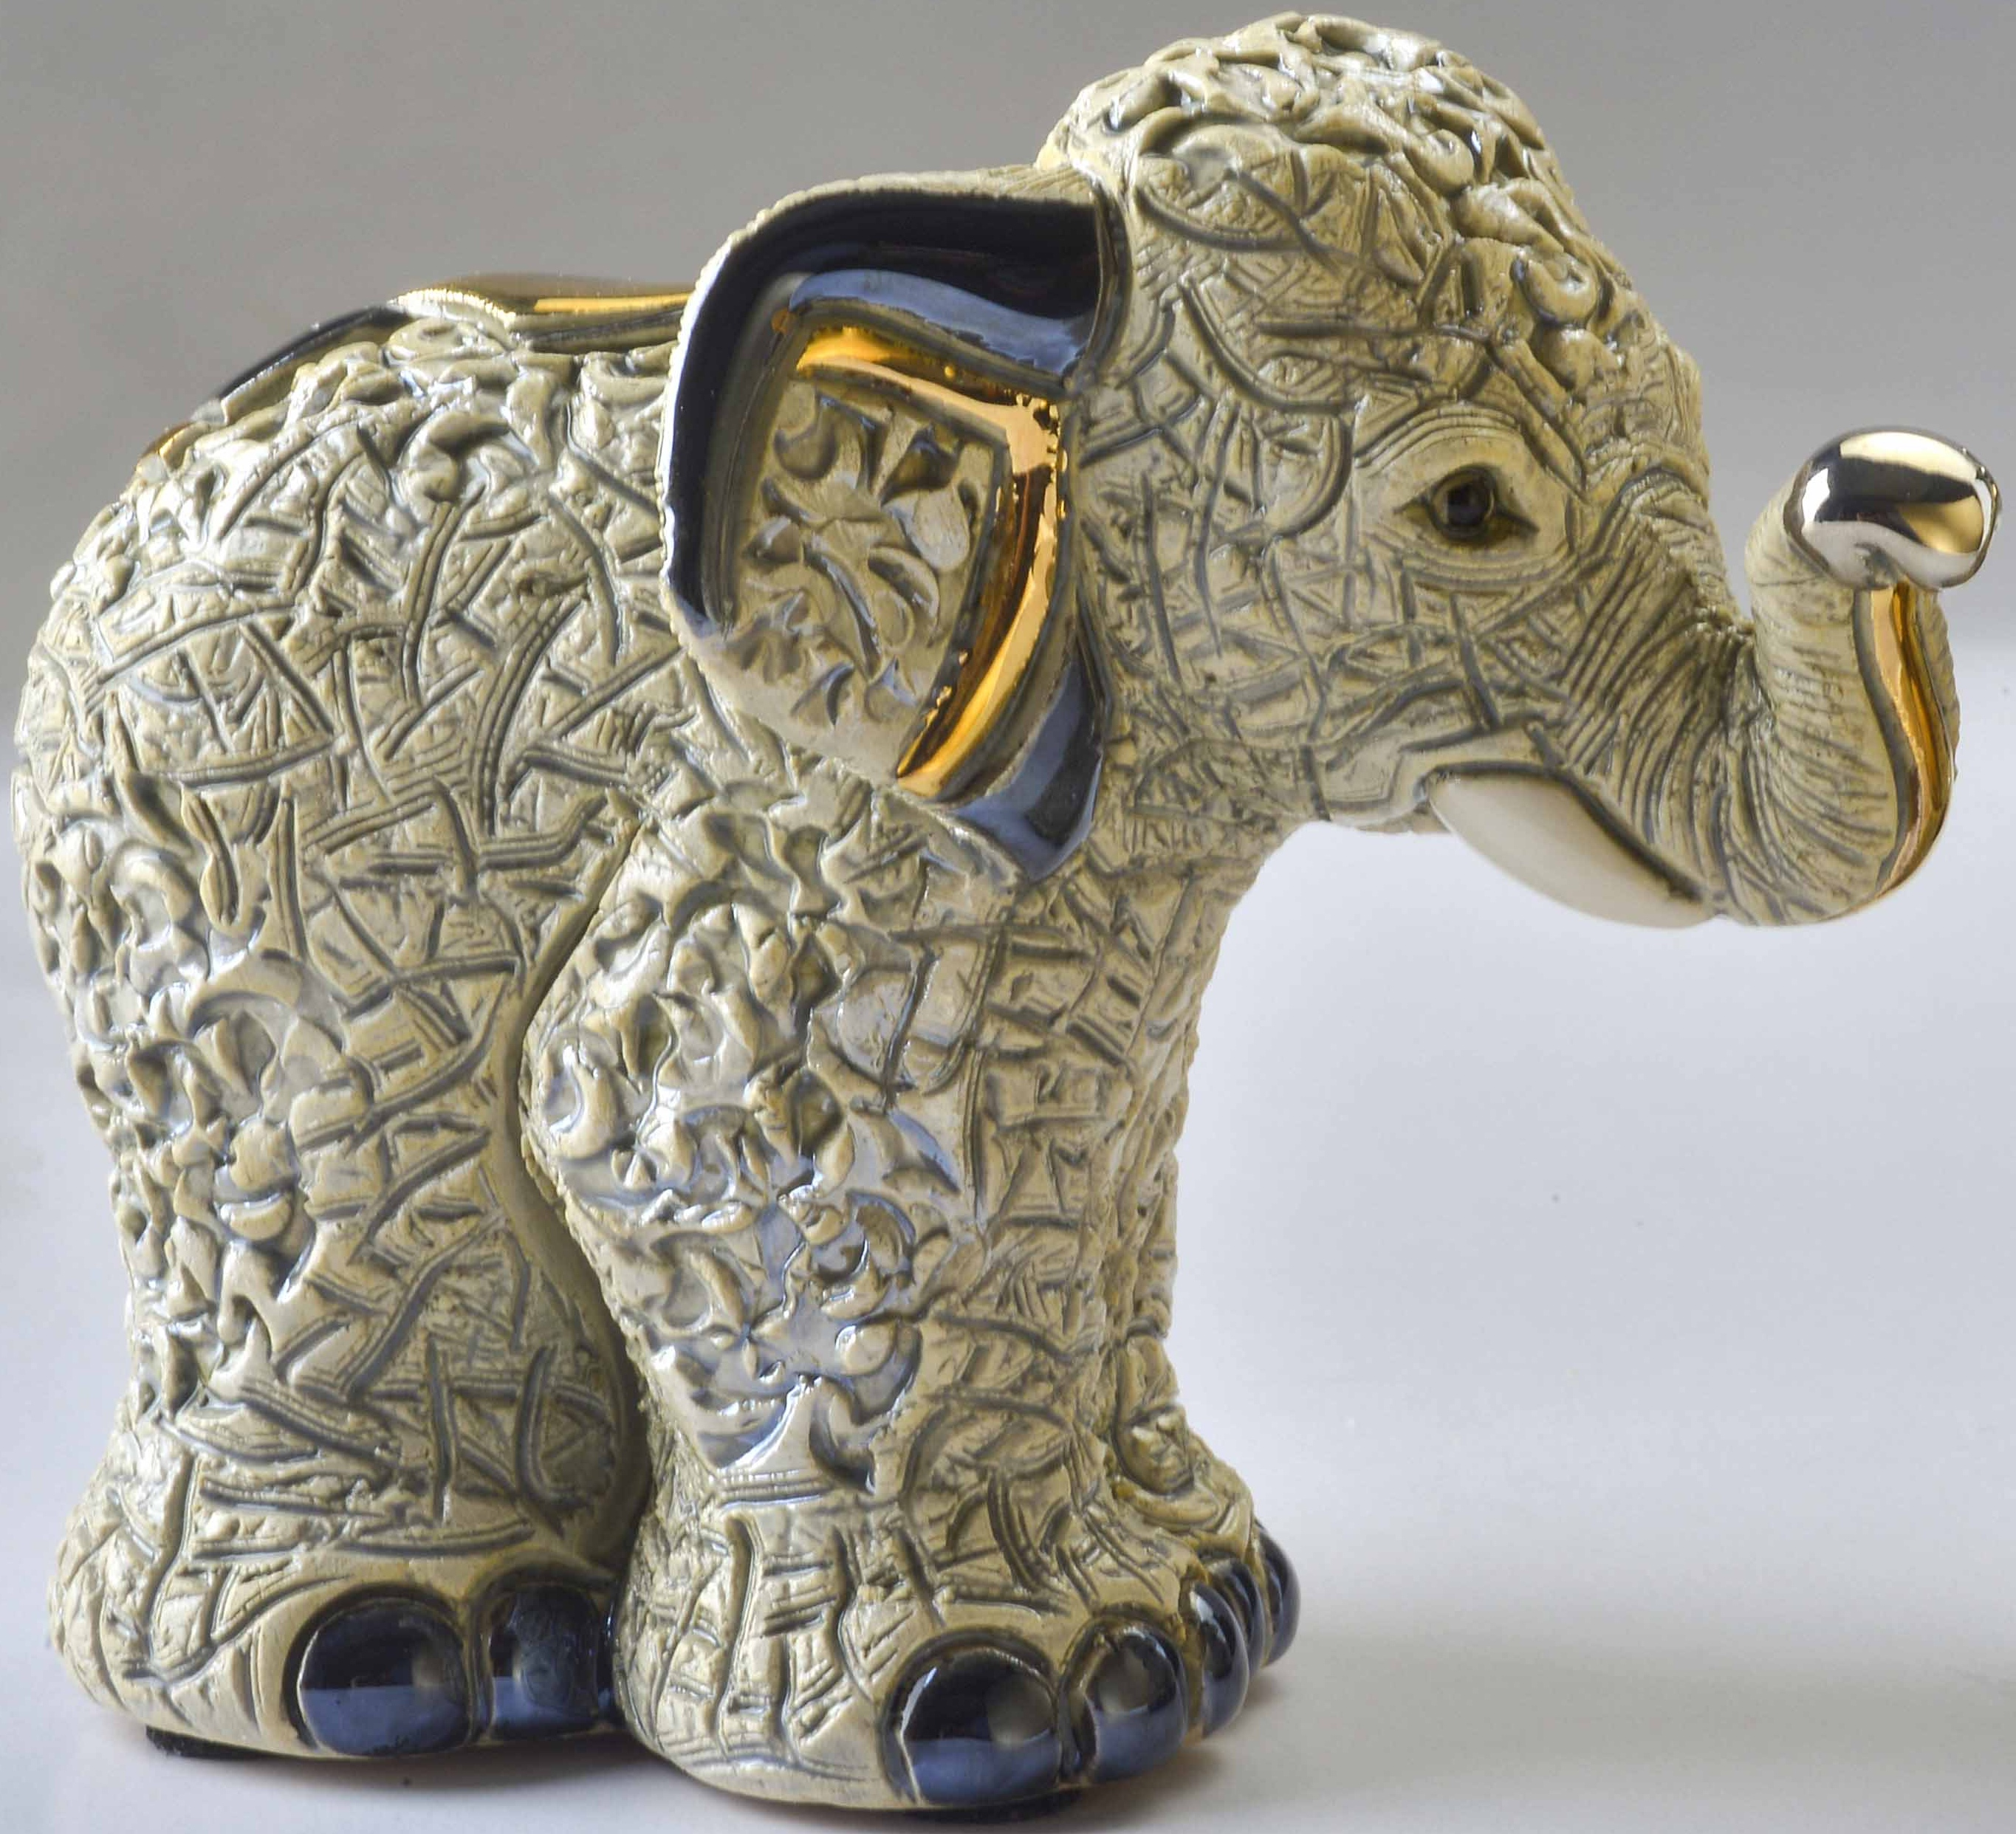 De Rosa Collections F419 Elephant Indian Baby